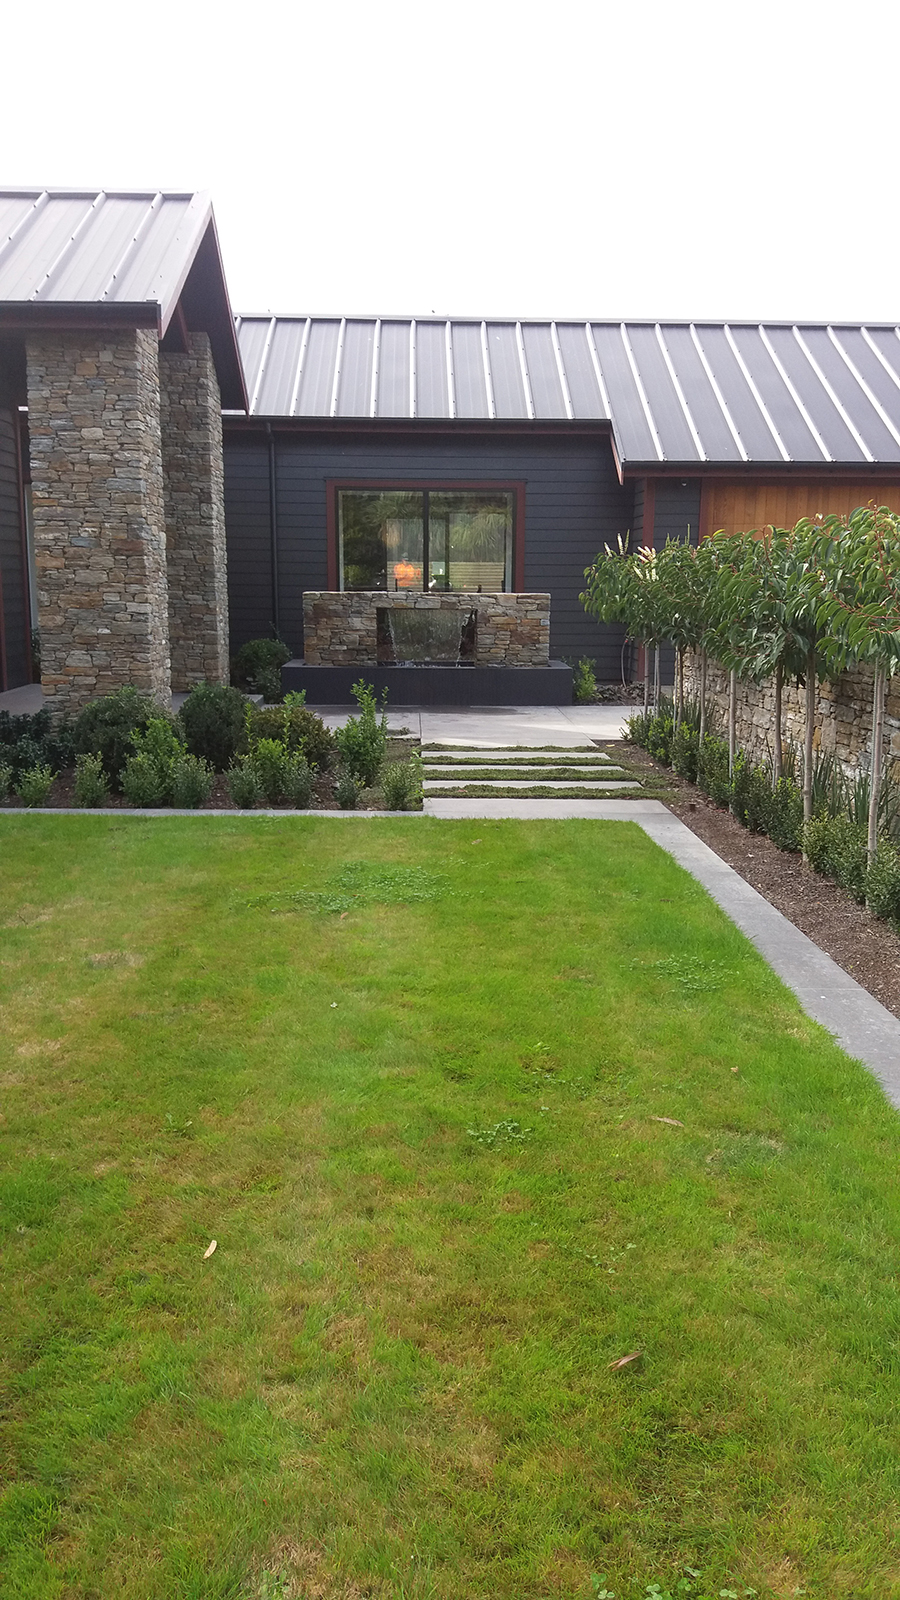 Water feature Landscaping with a lawn and garden either side